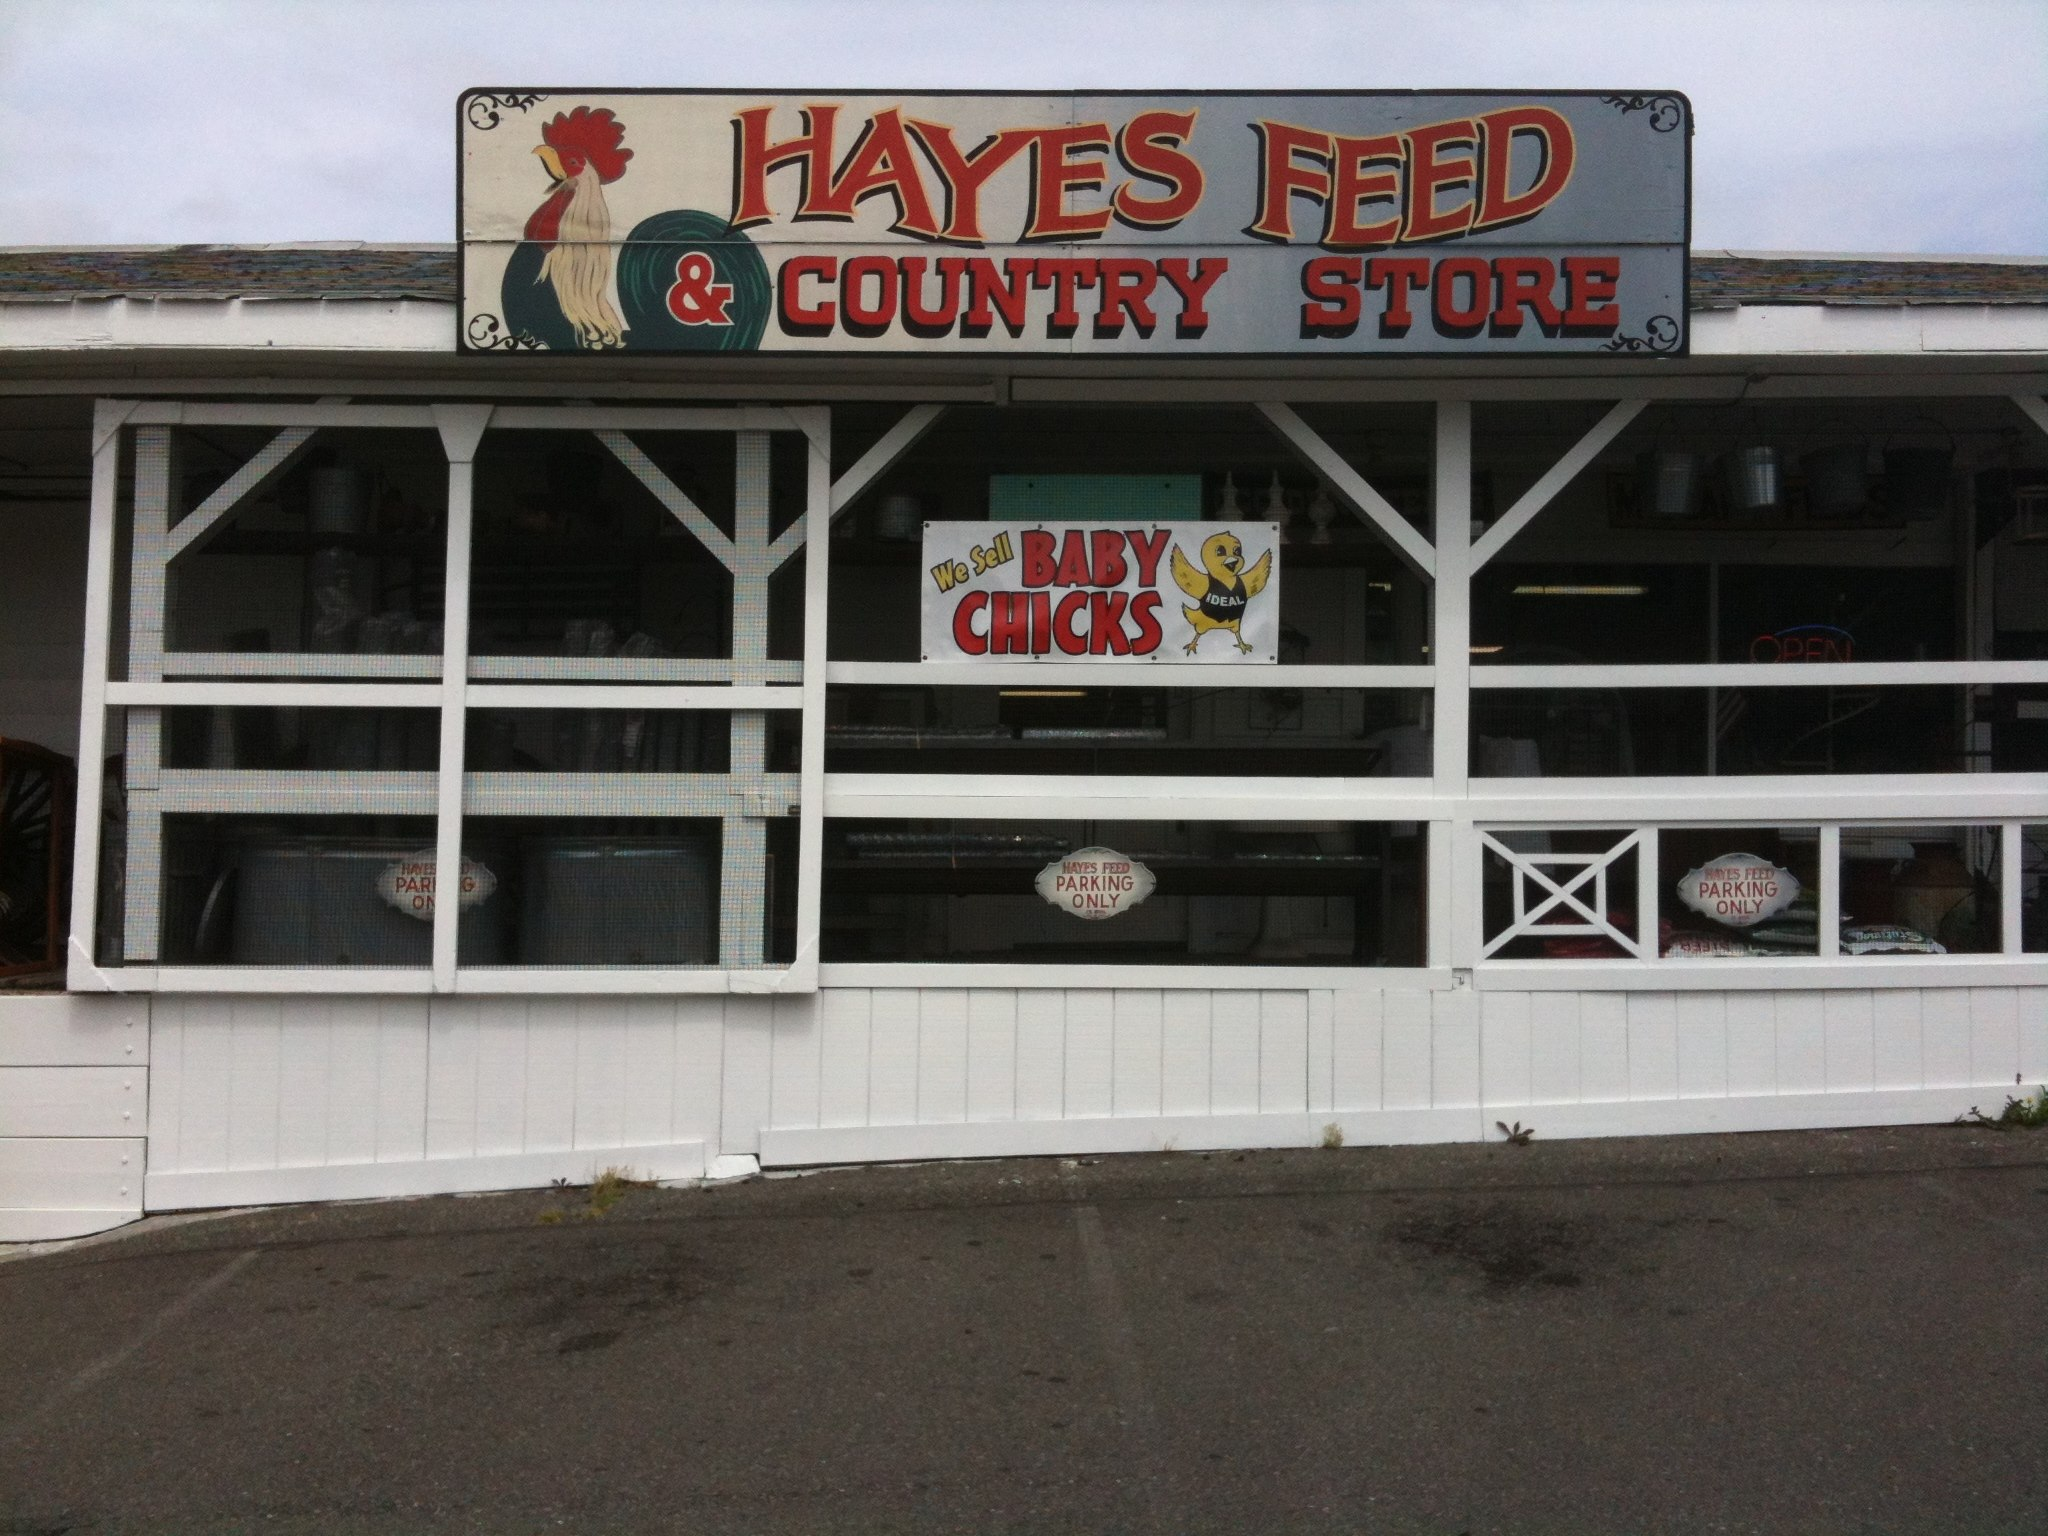 Hayes Feed & Country Store